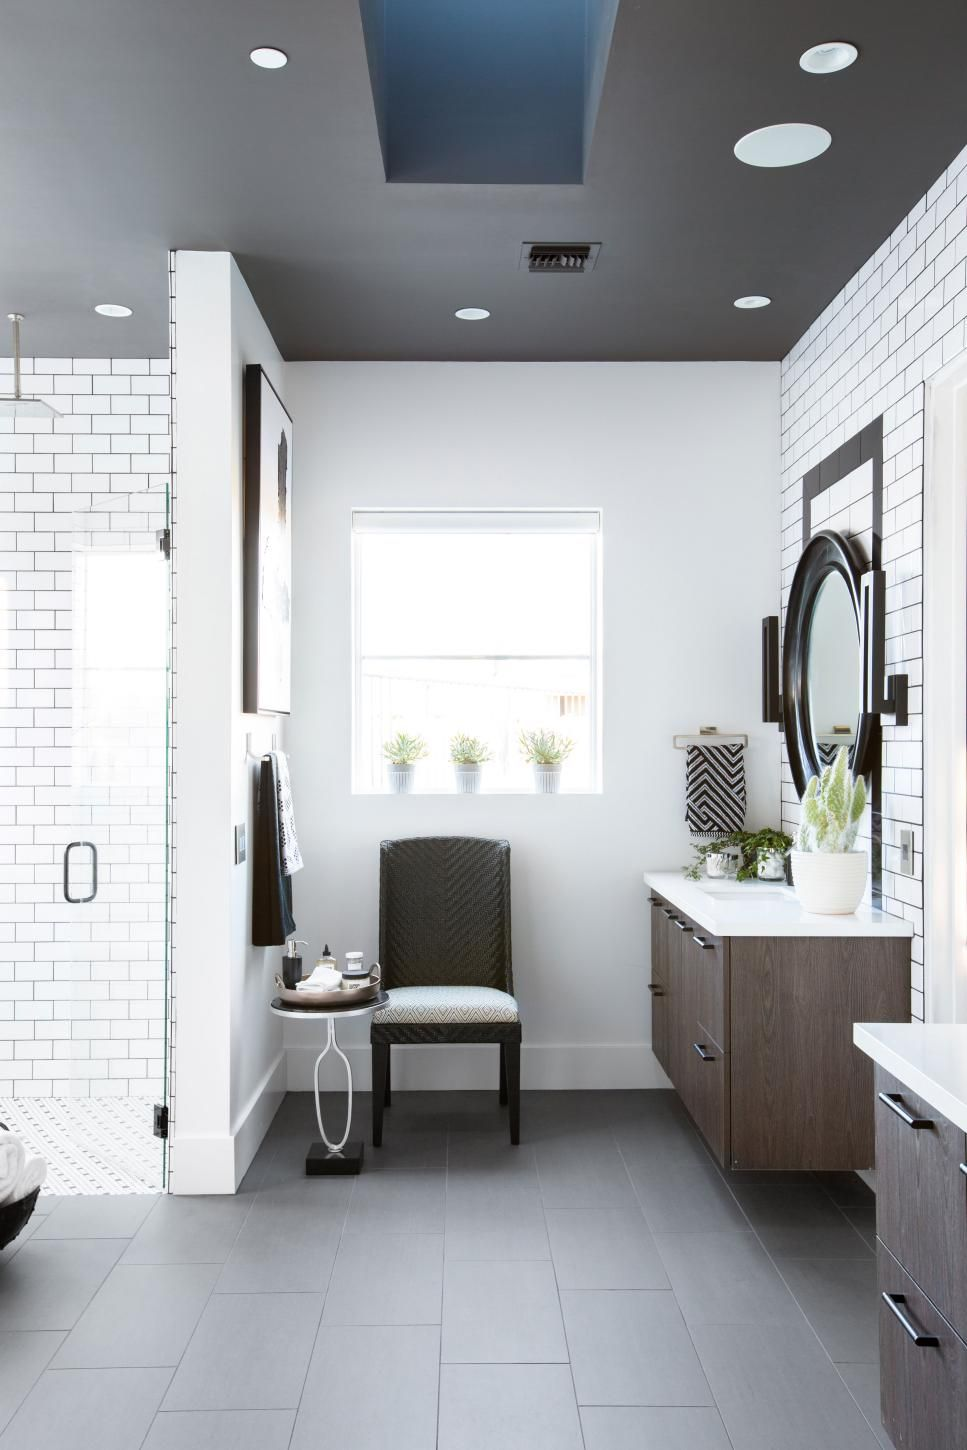 House Tour Master Bath: This Luxurious Master Bath With High-tech Features For The